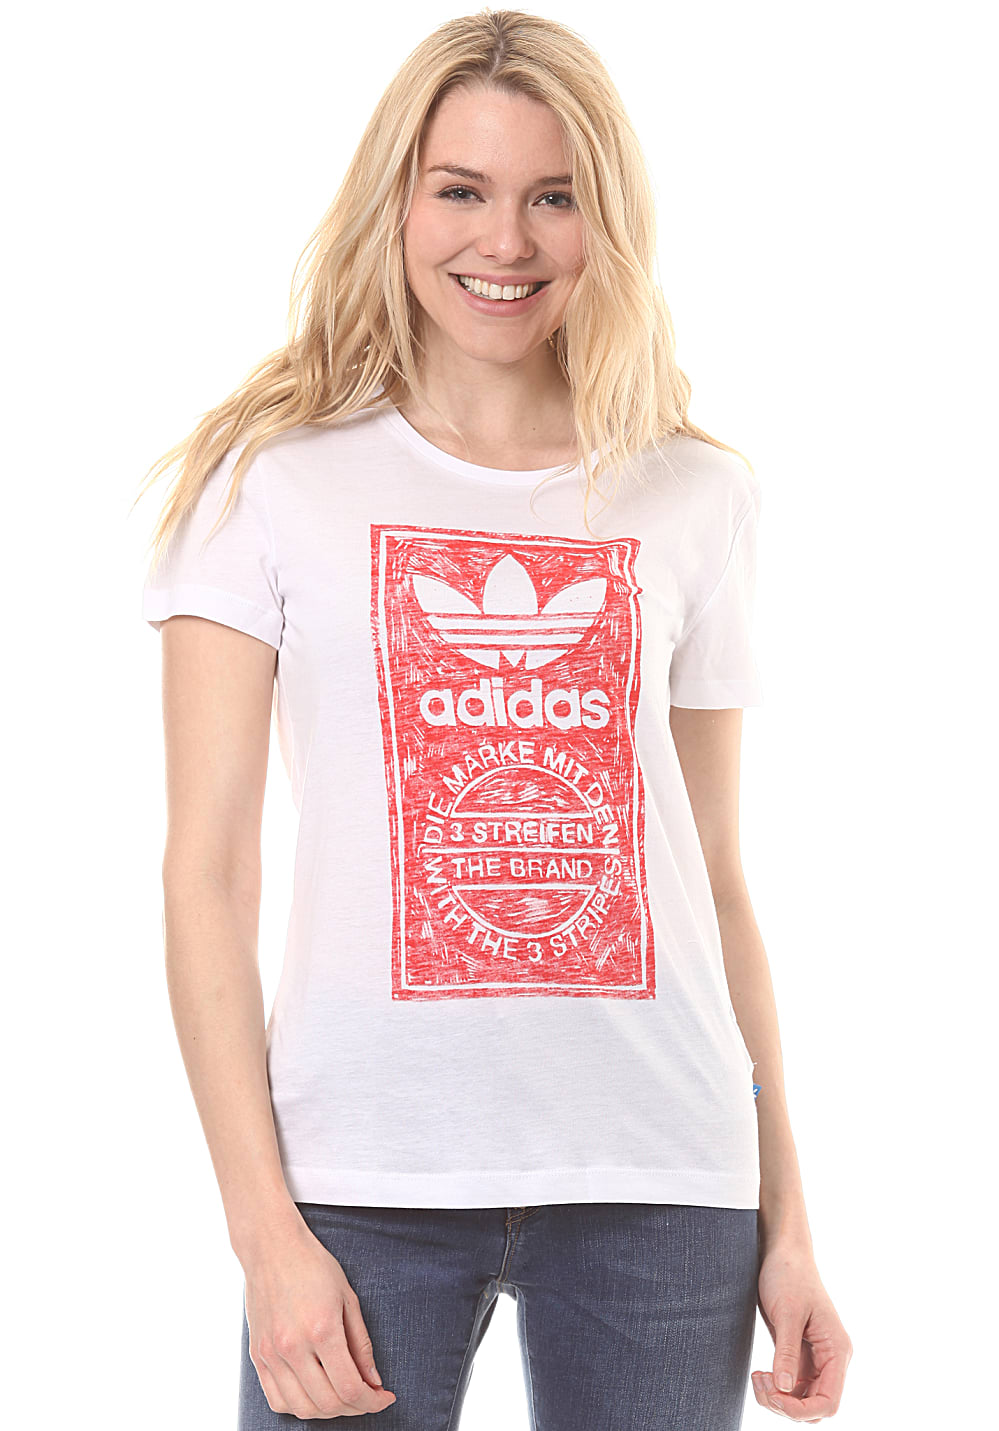 adidas tongue l t shirt f r damen wei planet sports. Black Bedroom Furniture Sets. Home Design Ideas